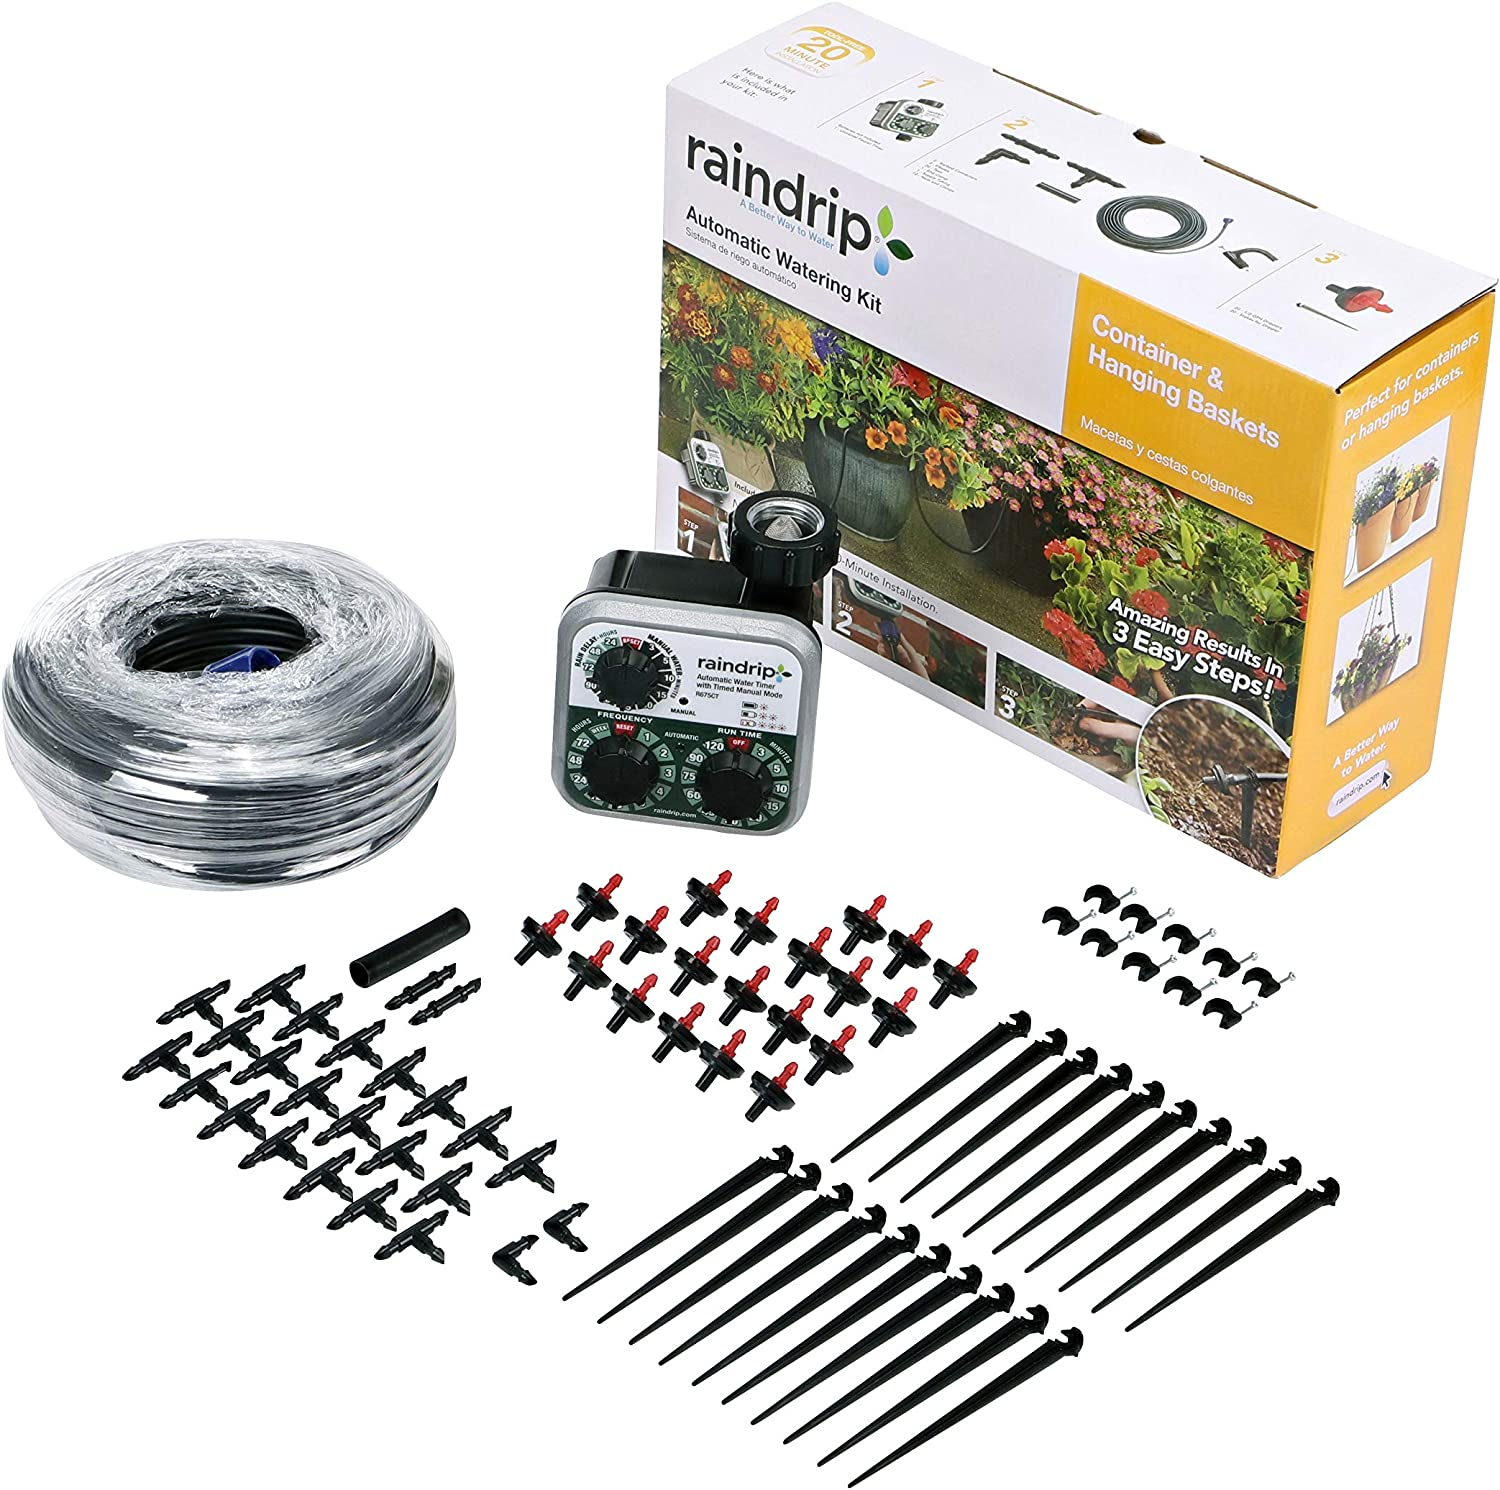 Raindrip R560DP Automatic Watering Kit